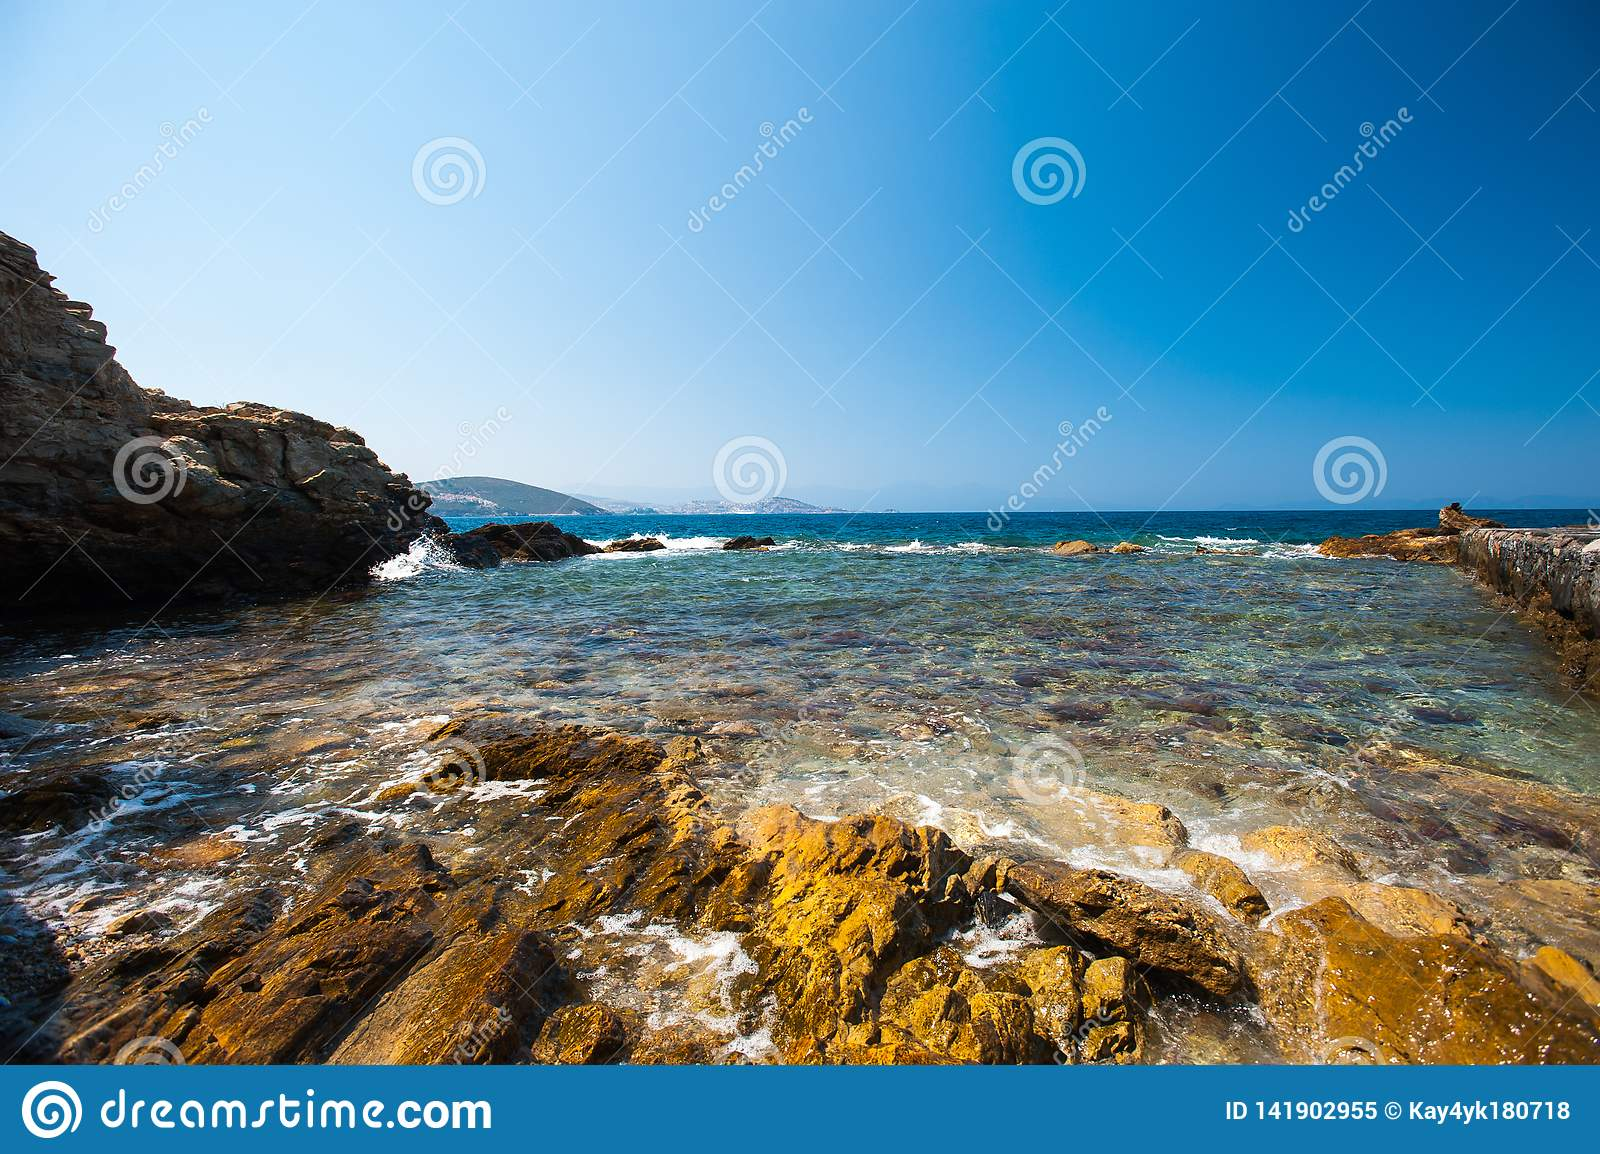 The sea beats on the rocks. clear water on the shore